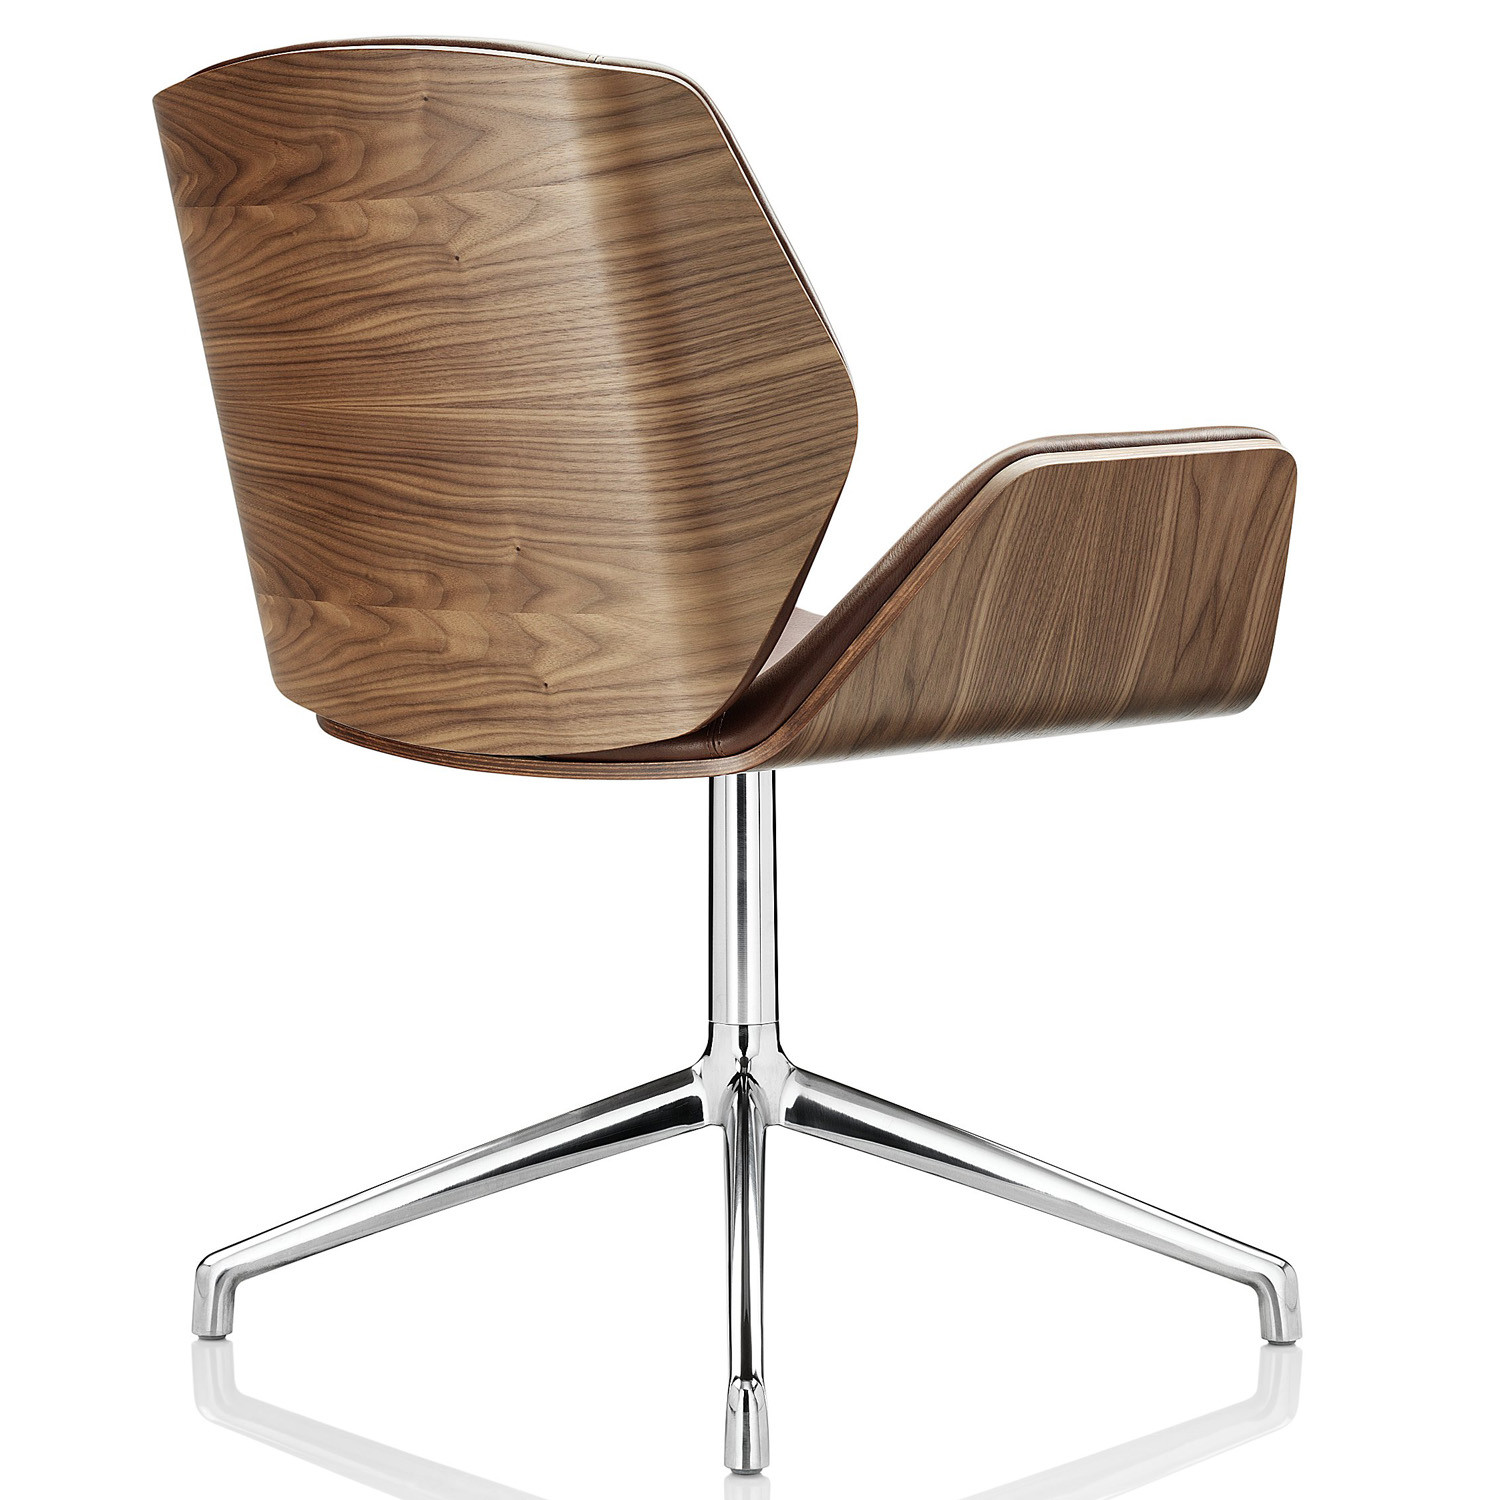 Kruze Chair with Wood Veneer